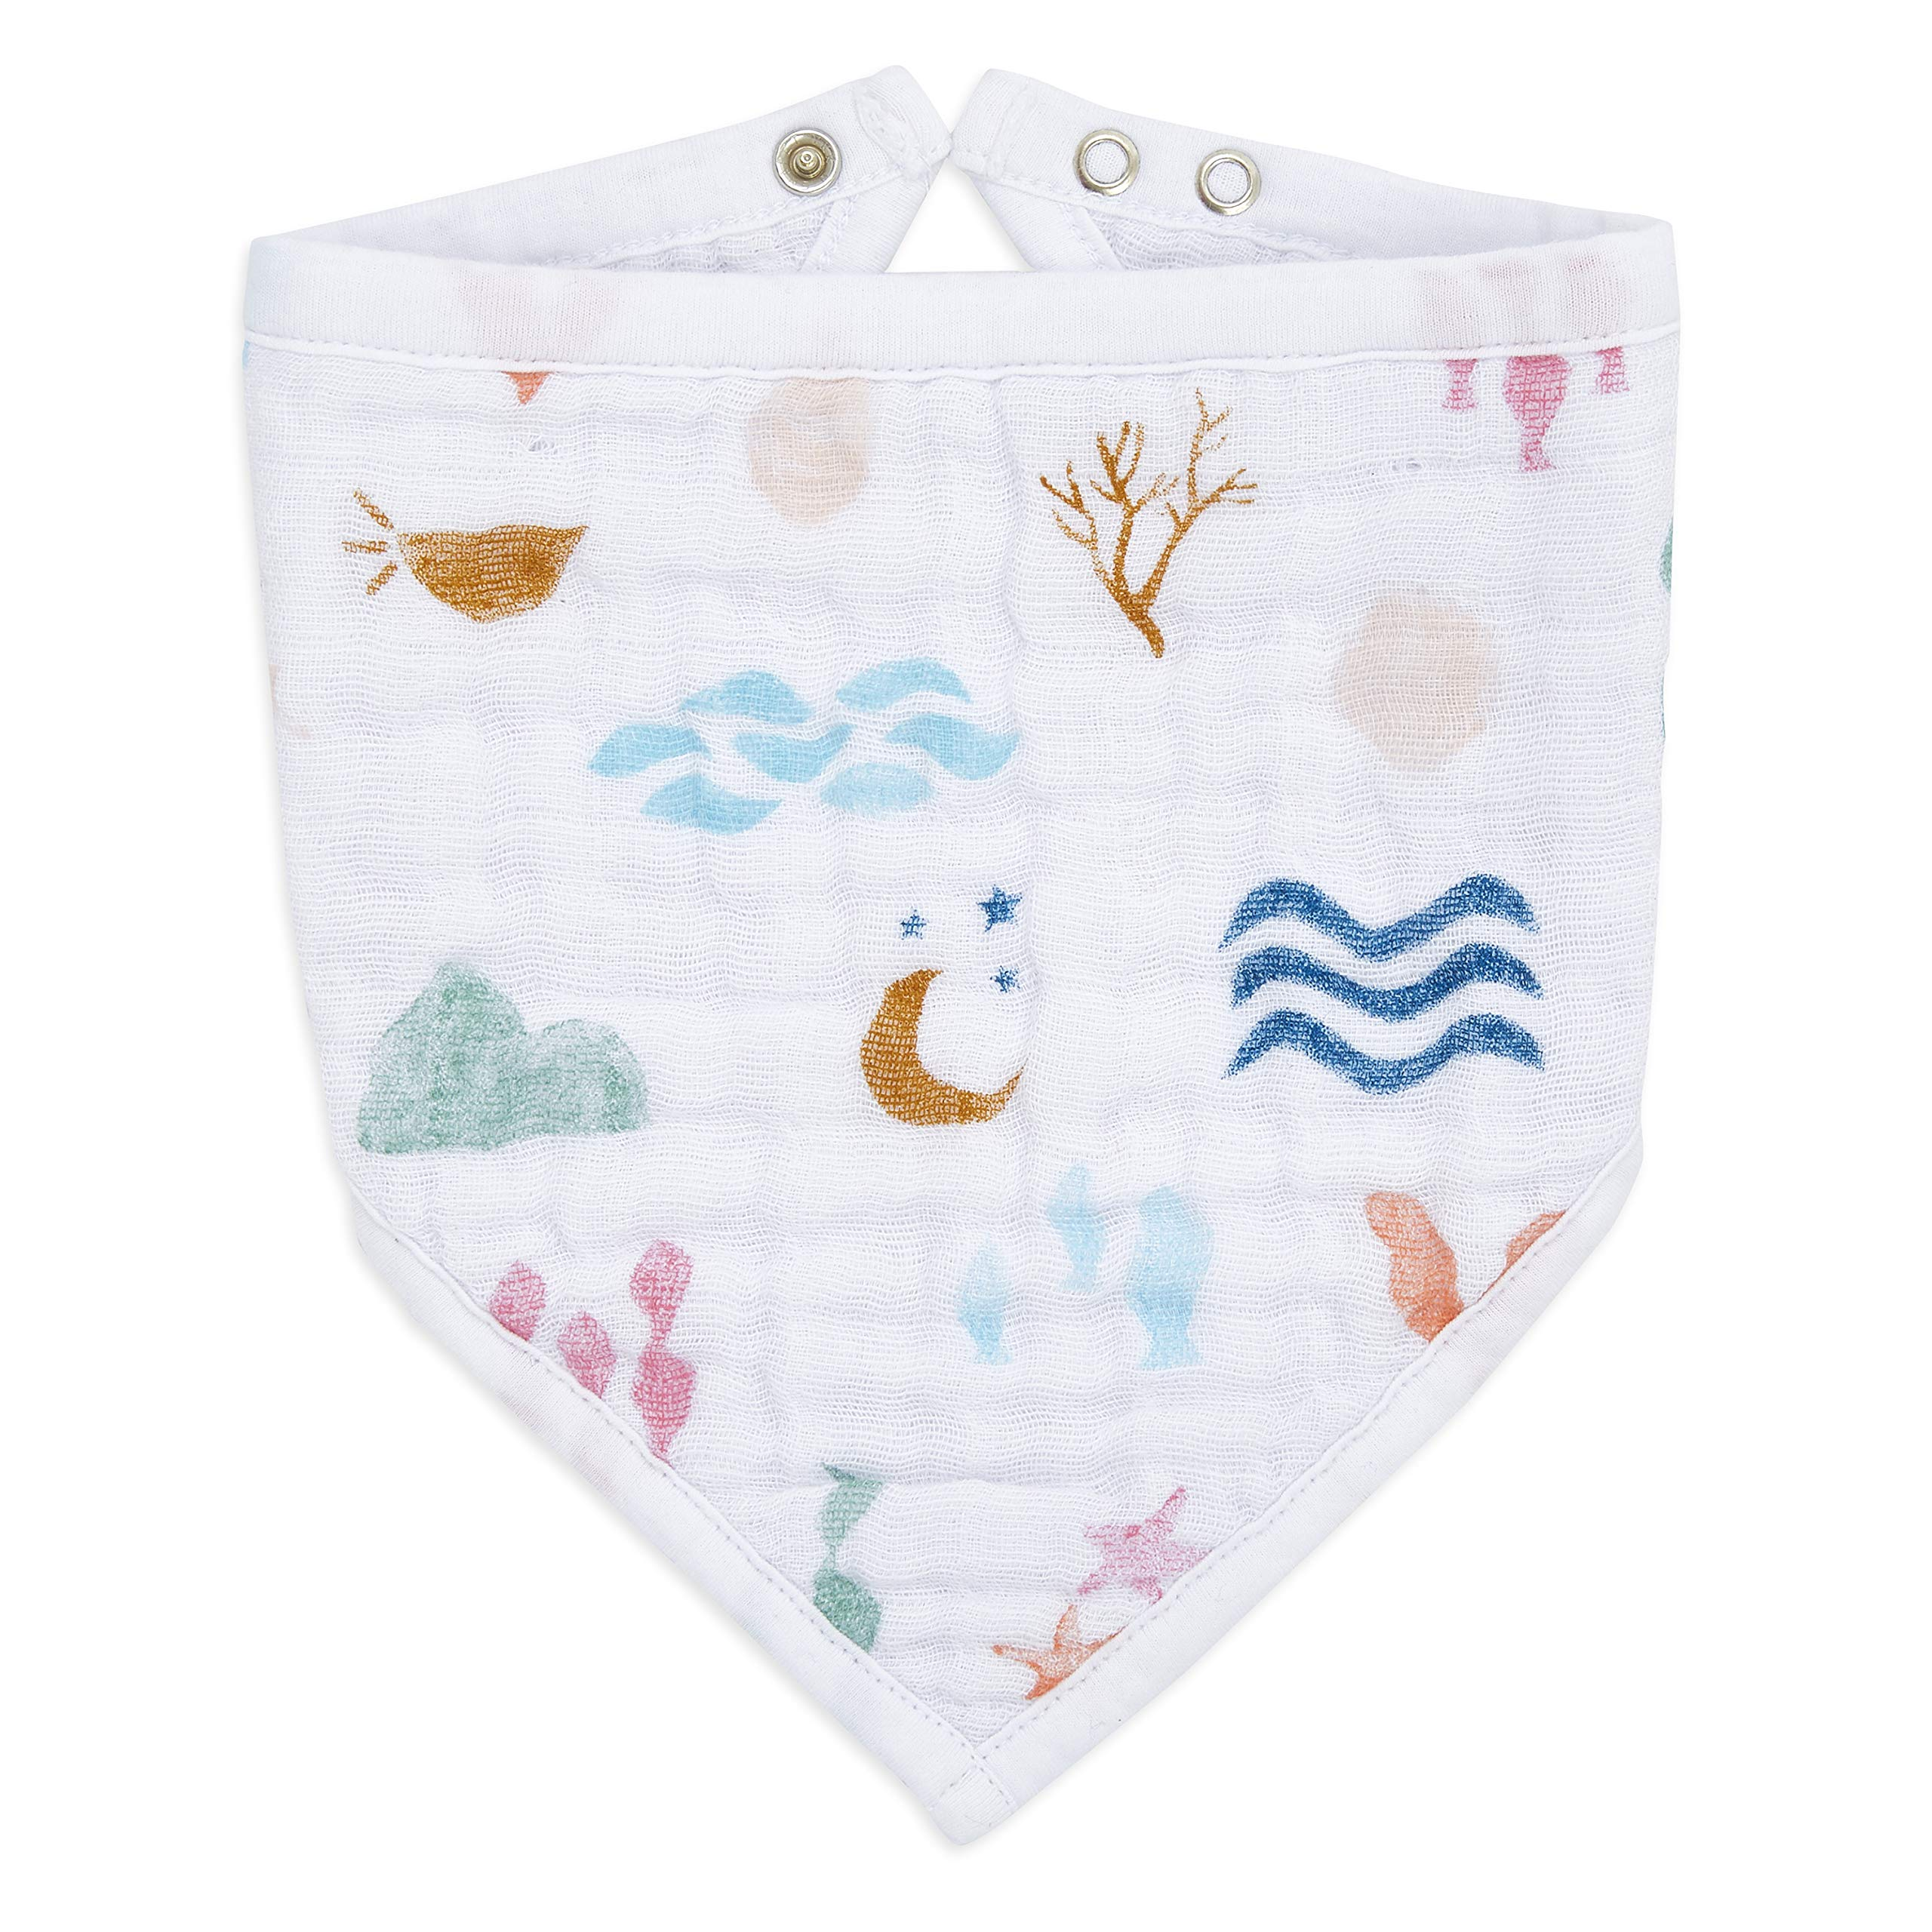 aden + anais Bandana Baby Bib   100% Cotton Muslin   3 Layer Burp Cloth   Super Soft & Absorbent for Infants, Newborns and Toddlers, Adjustable with Snaps, Mermaid